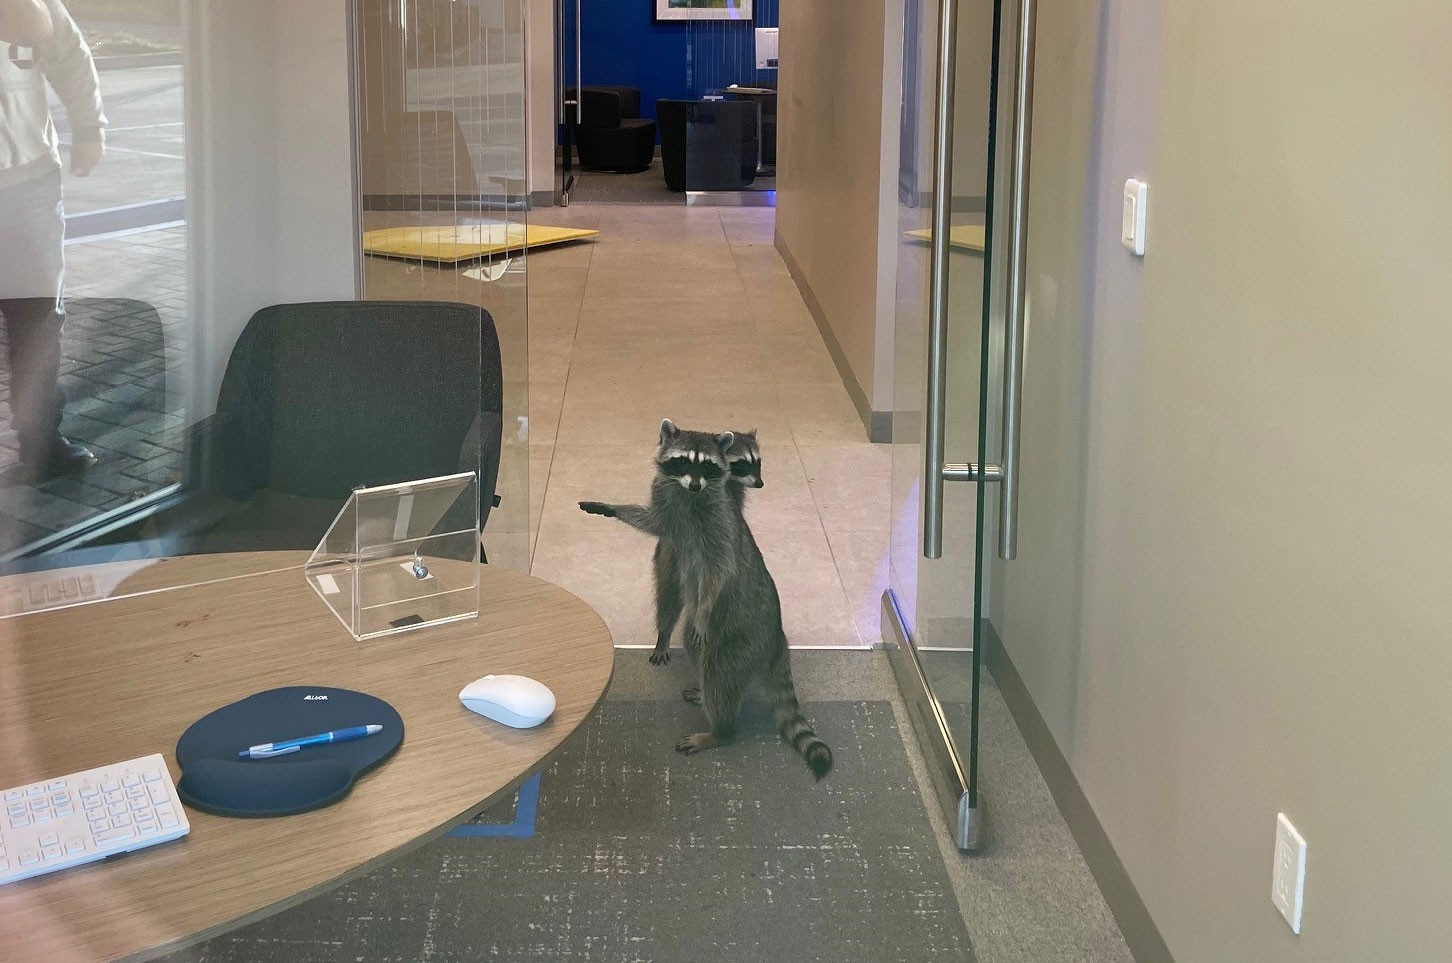 A photo of a typical bank office showing a grey carpet and office furniture, plus two raccoons looking slightly caught